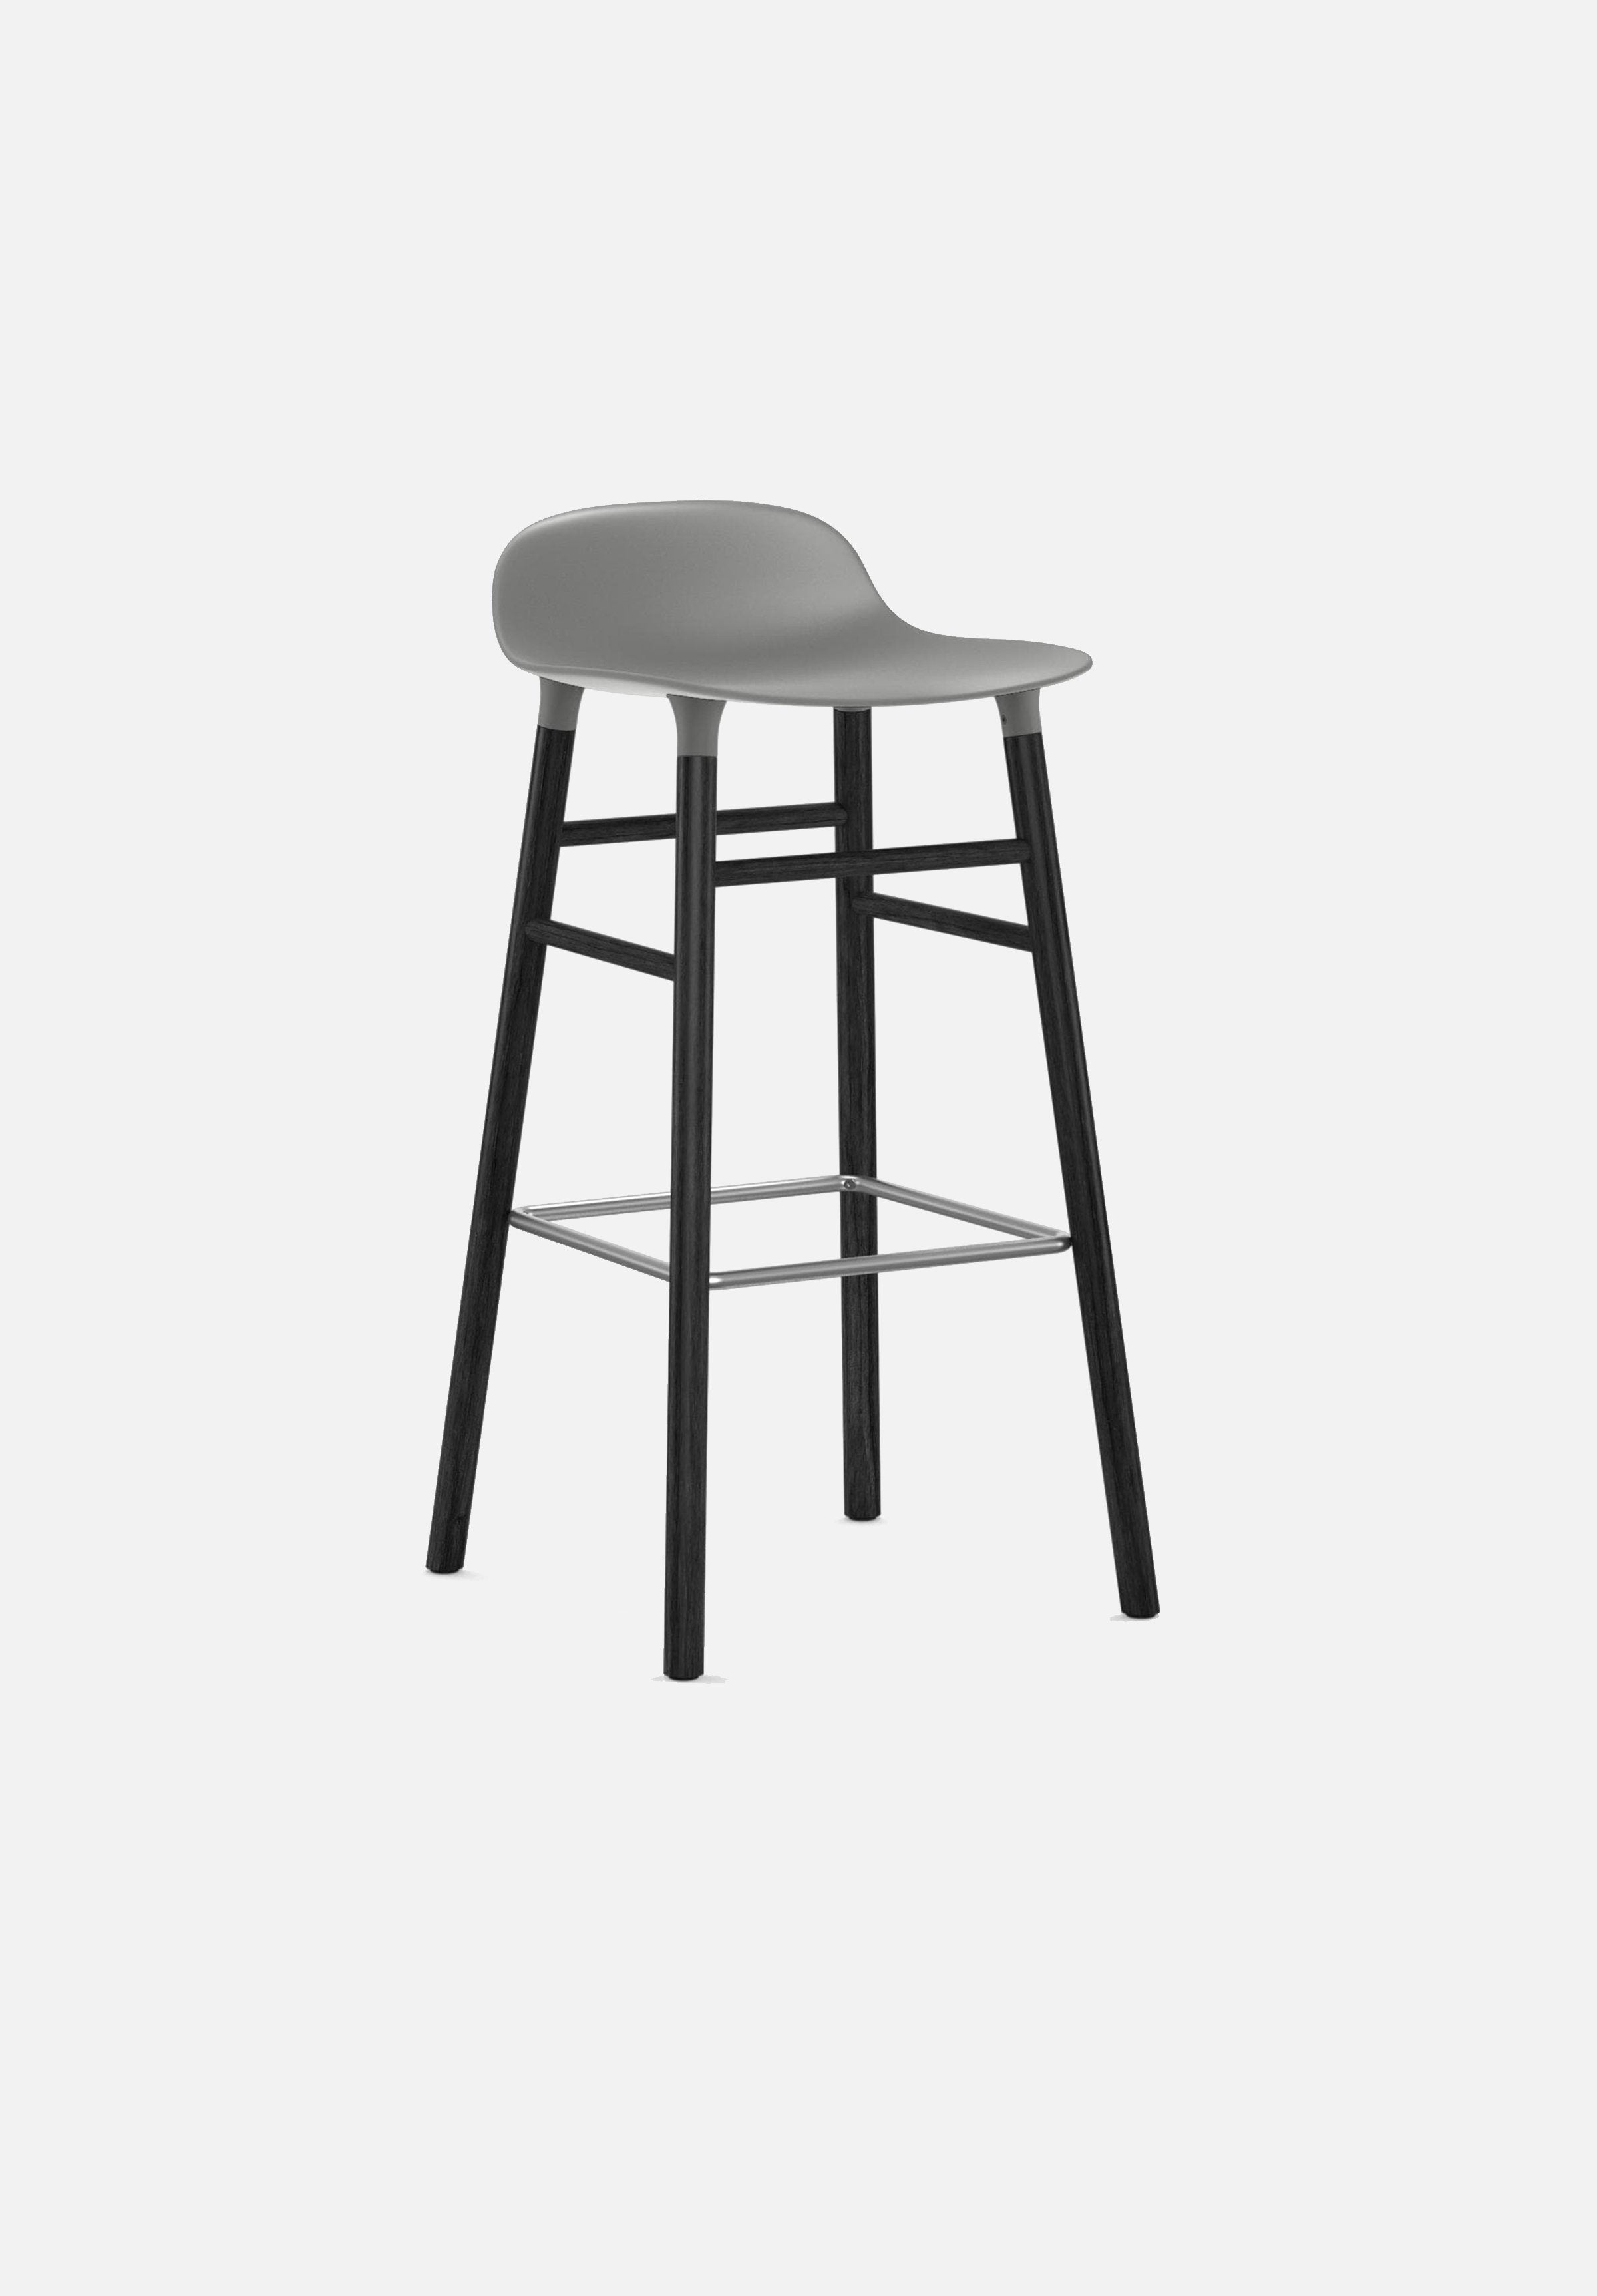 Form Stool — 75cm-Simon Legald-Normann Copenhagen-Grey-Black Lacquered Wood-Average-canada-design-store-danish-denmark-furniture-interior